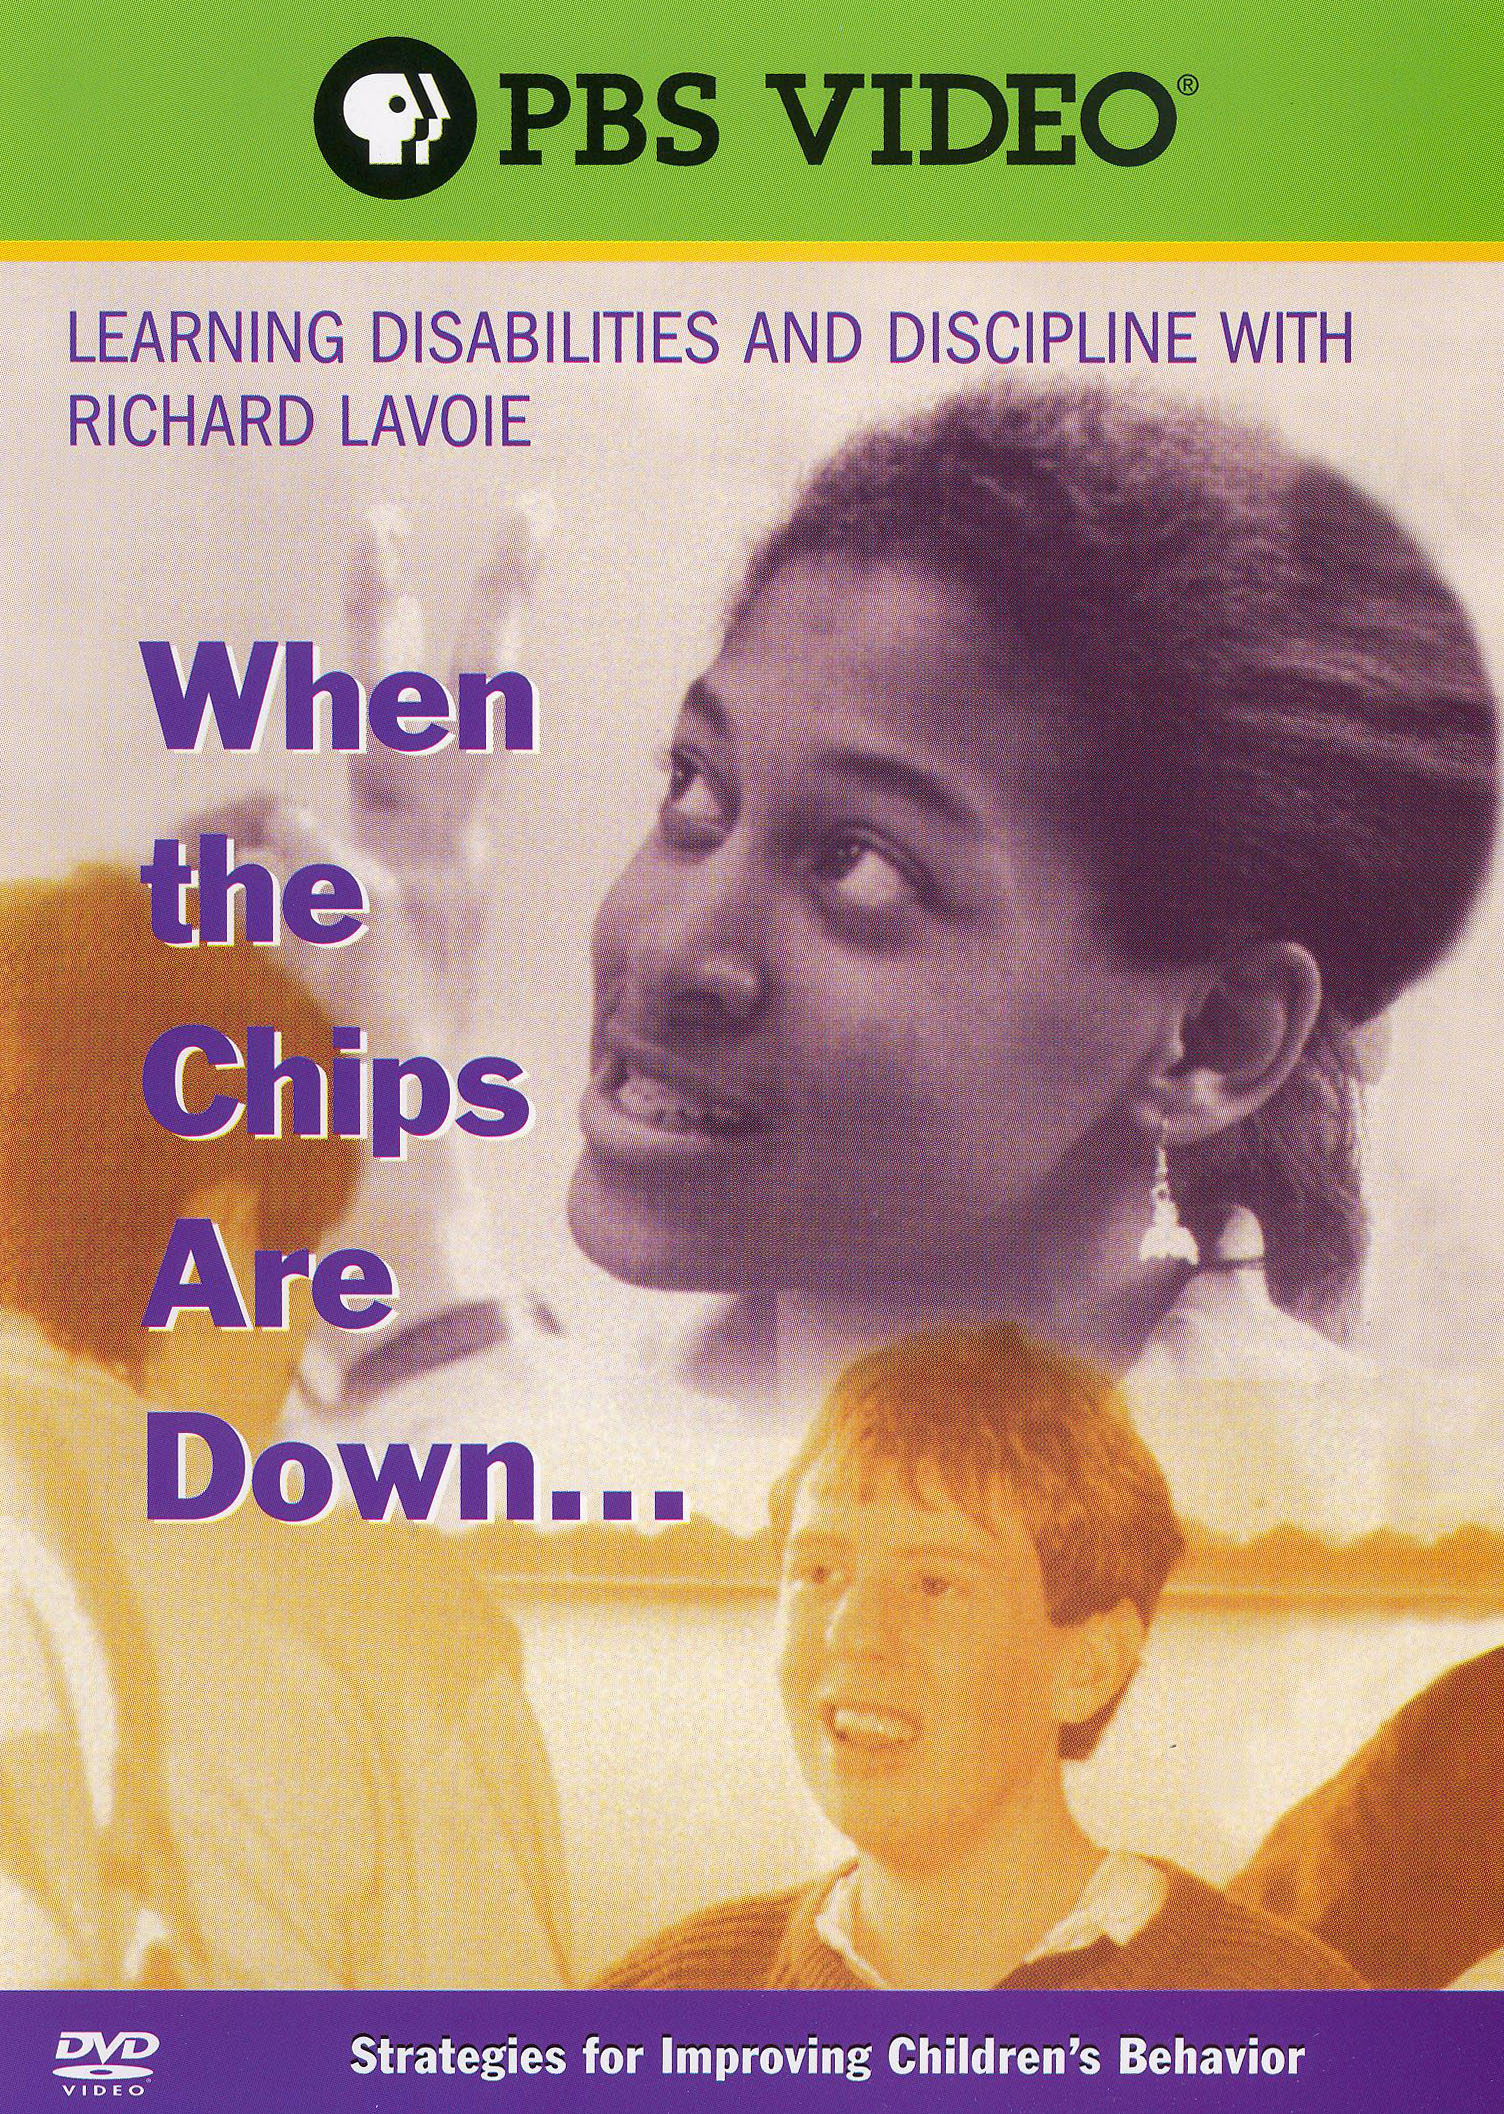 Richard Lavoie: Learning Disabilities and Discipline